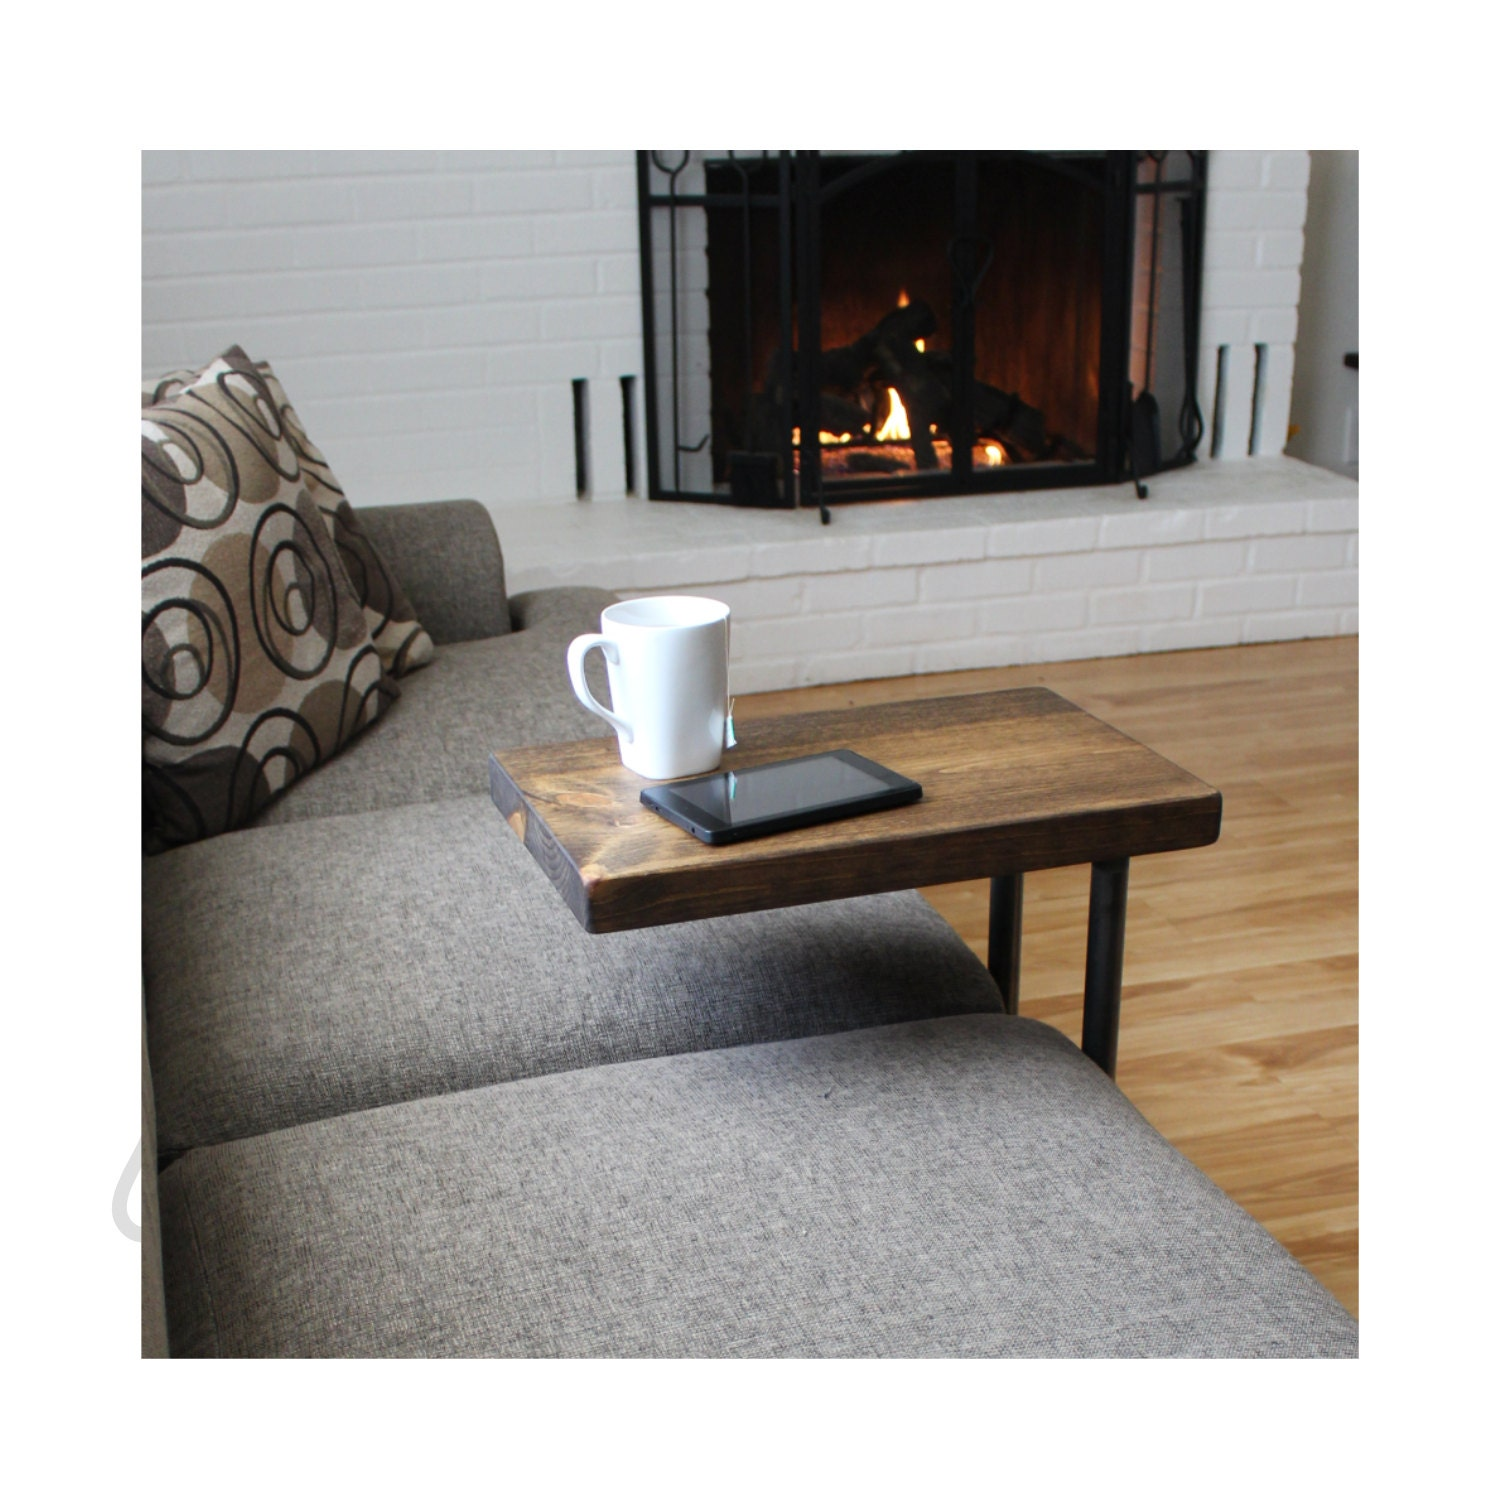 Industrial Furniture, Coffee Table, Side Table, Laptop